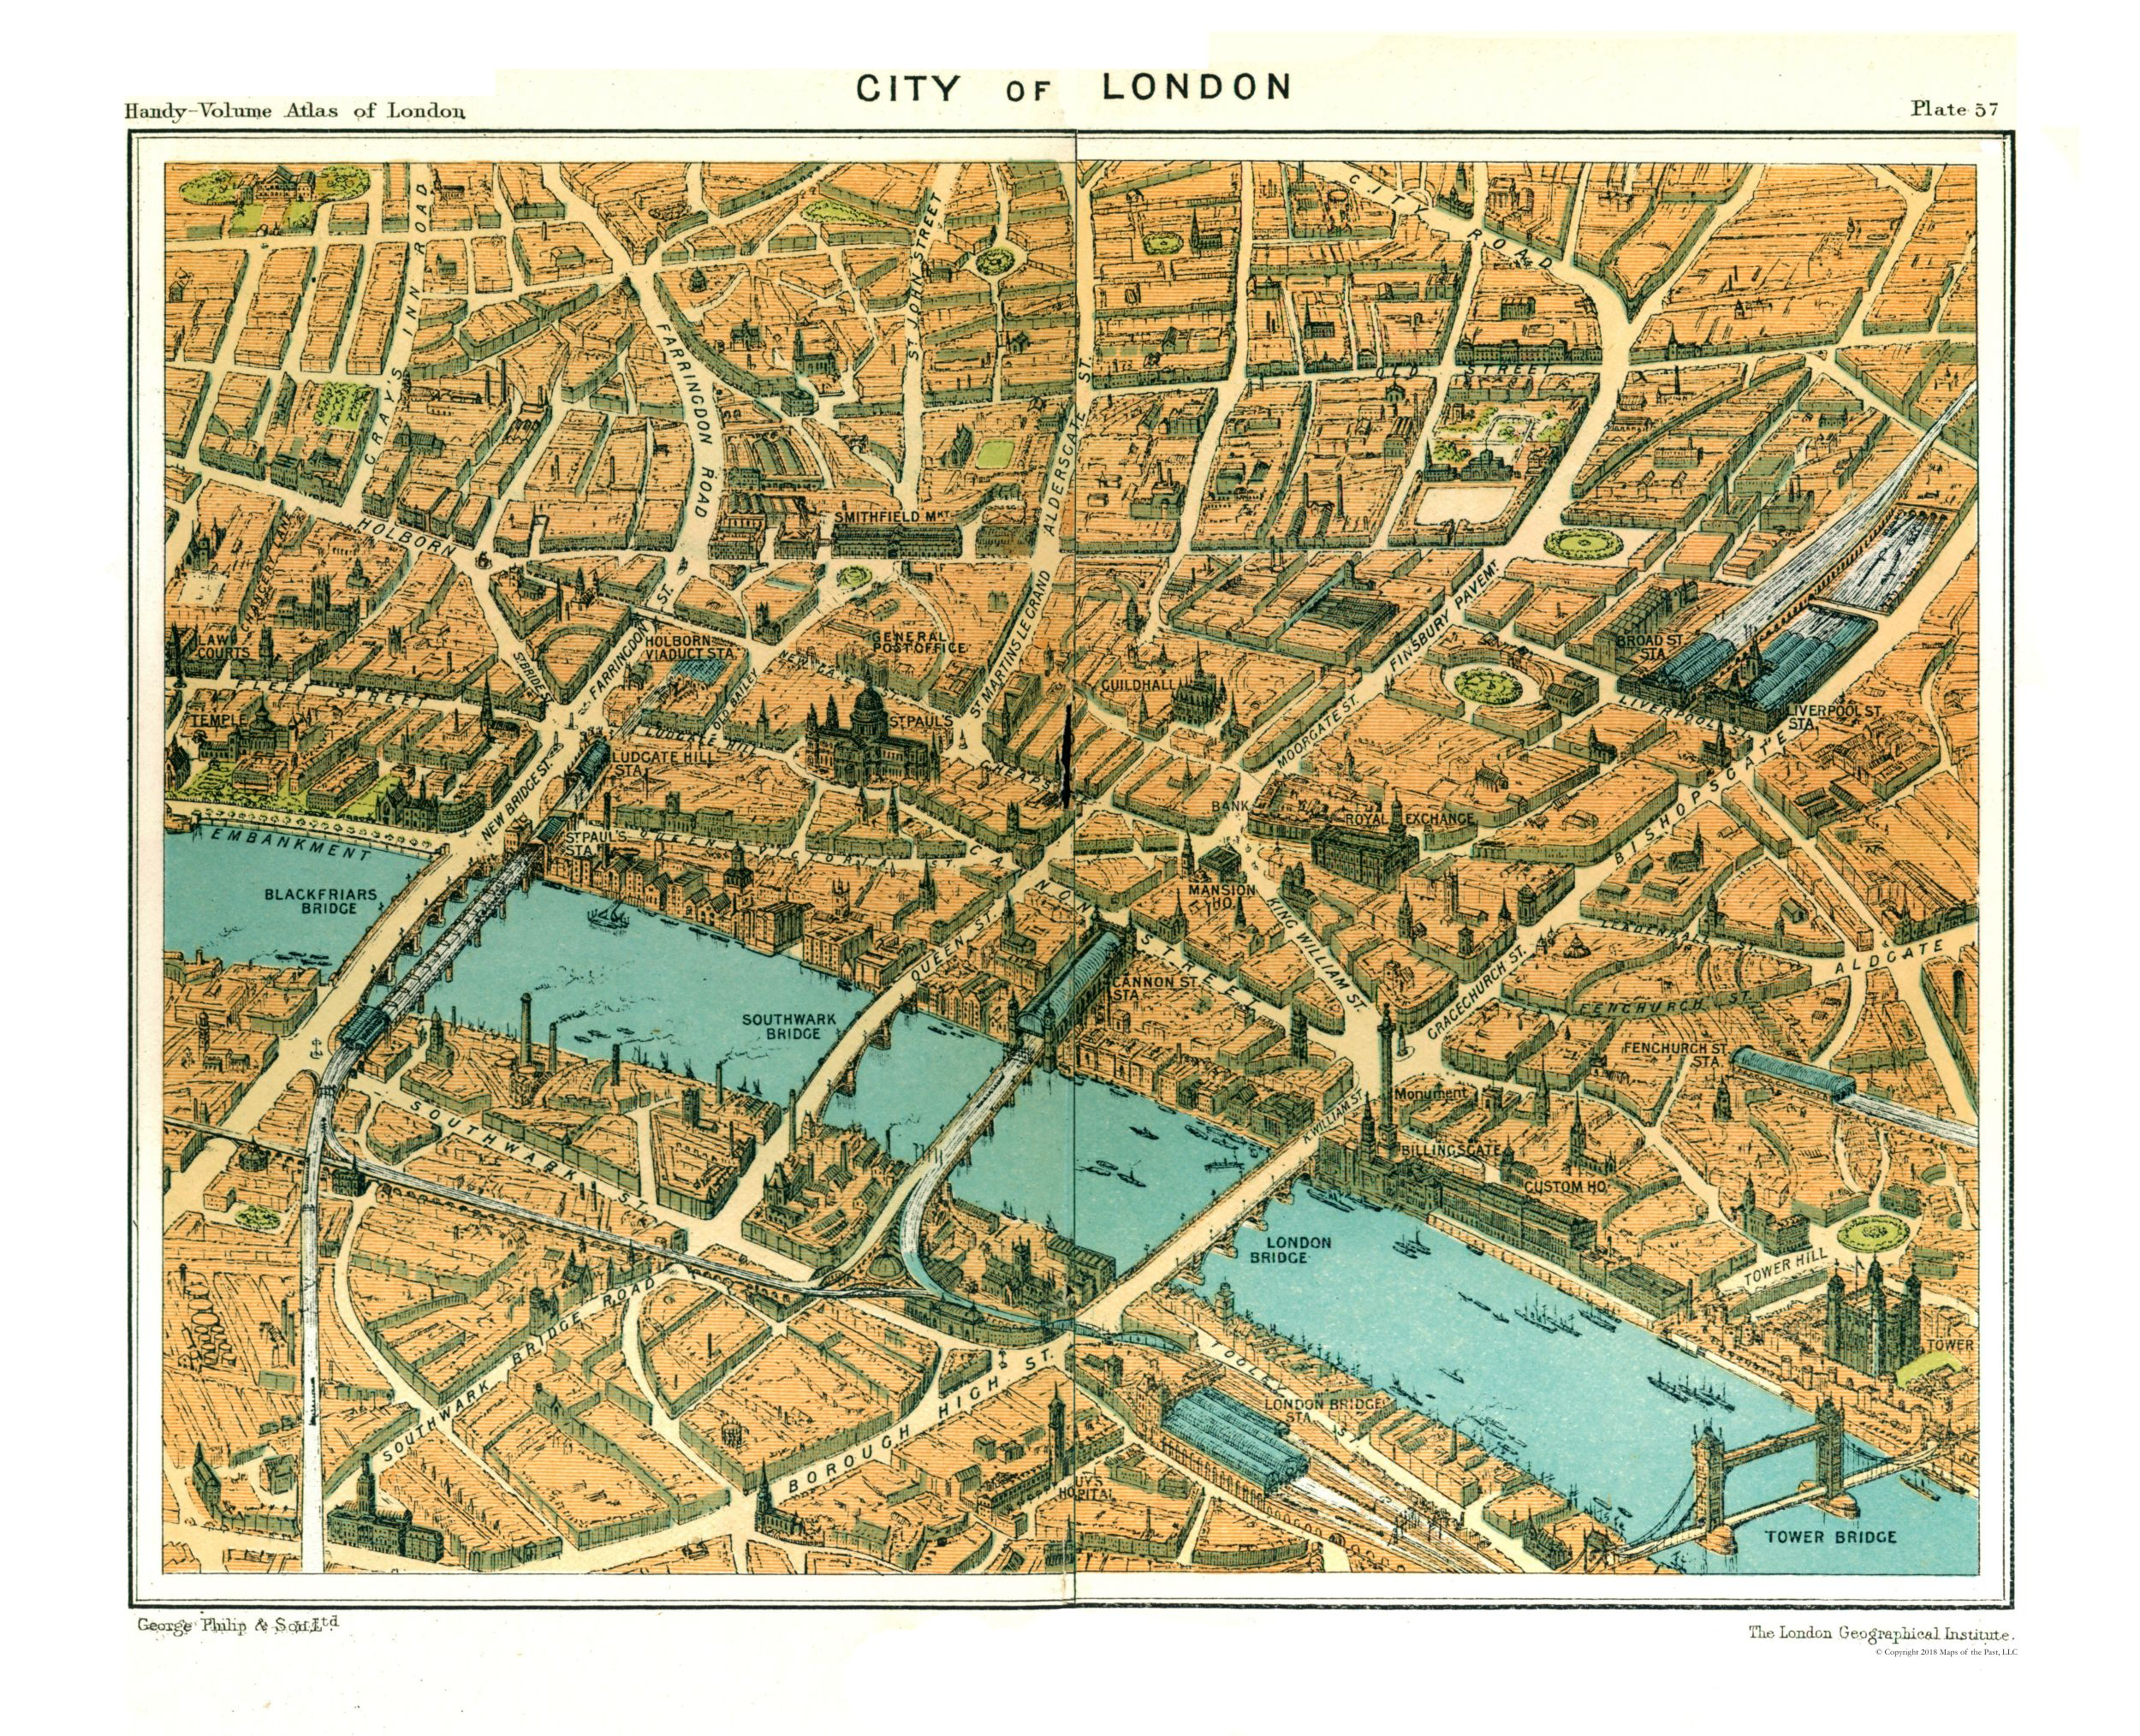 Map Of City Of London.Old International Maps City Of London Philips 1904 28 35 X 23